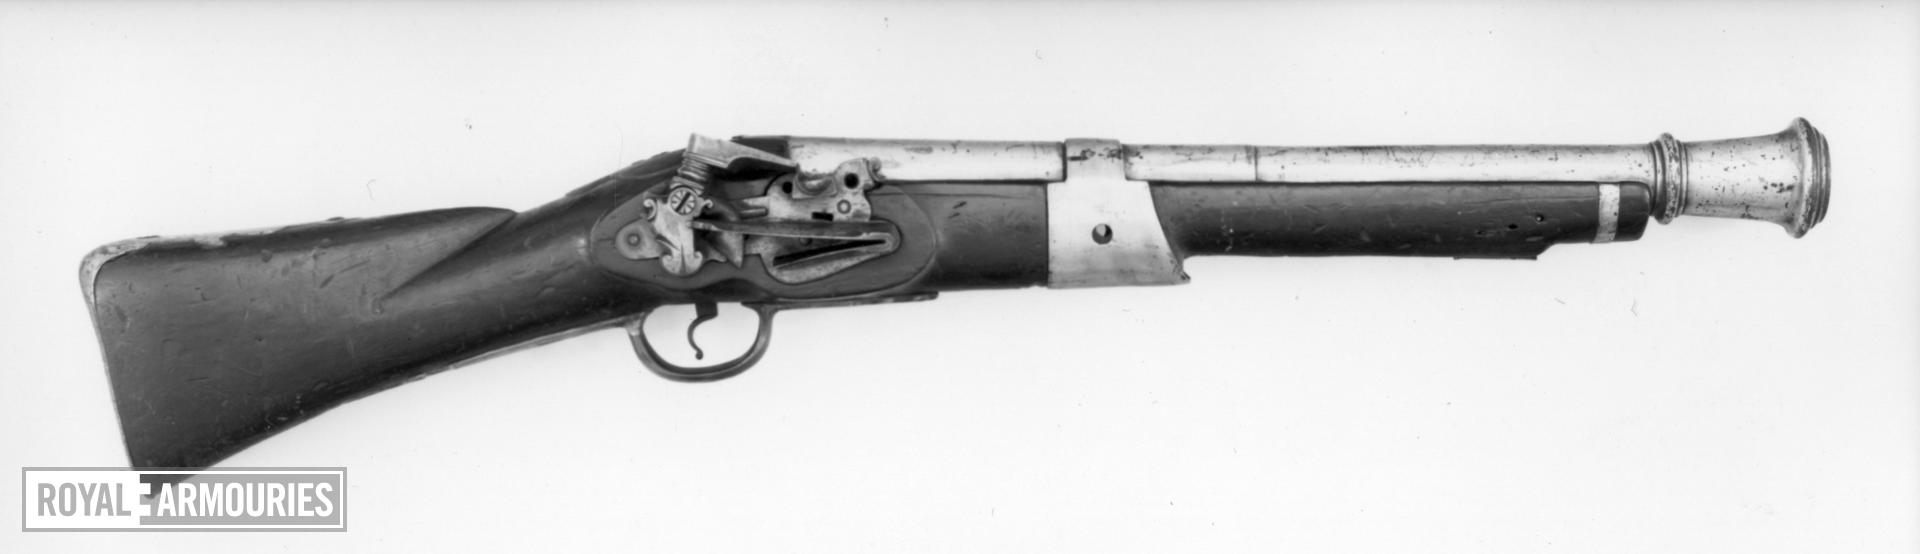 Flintlock wall gun